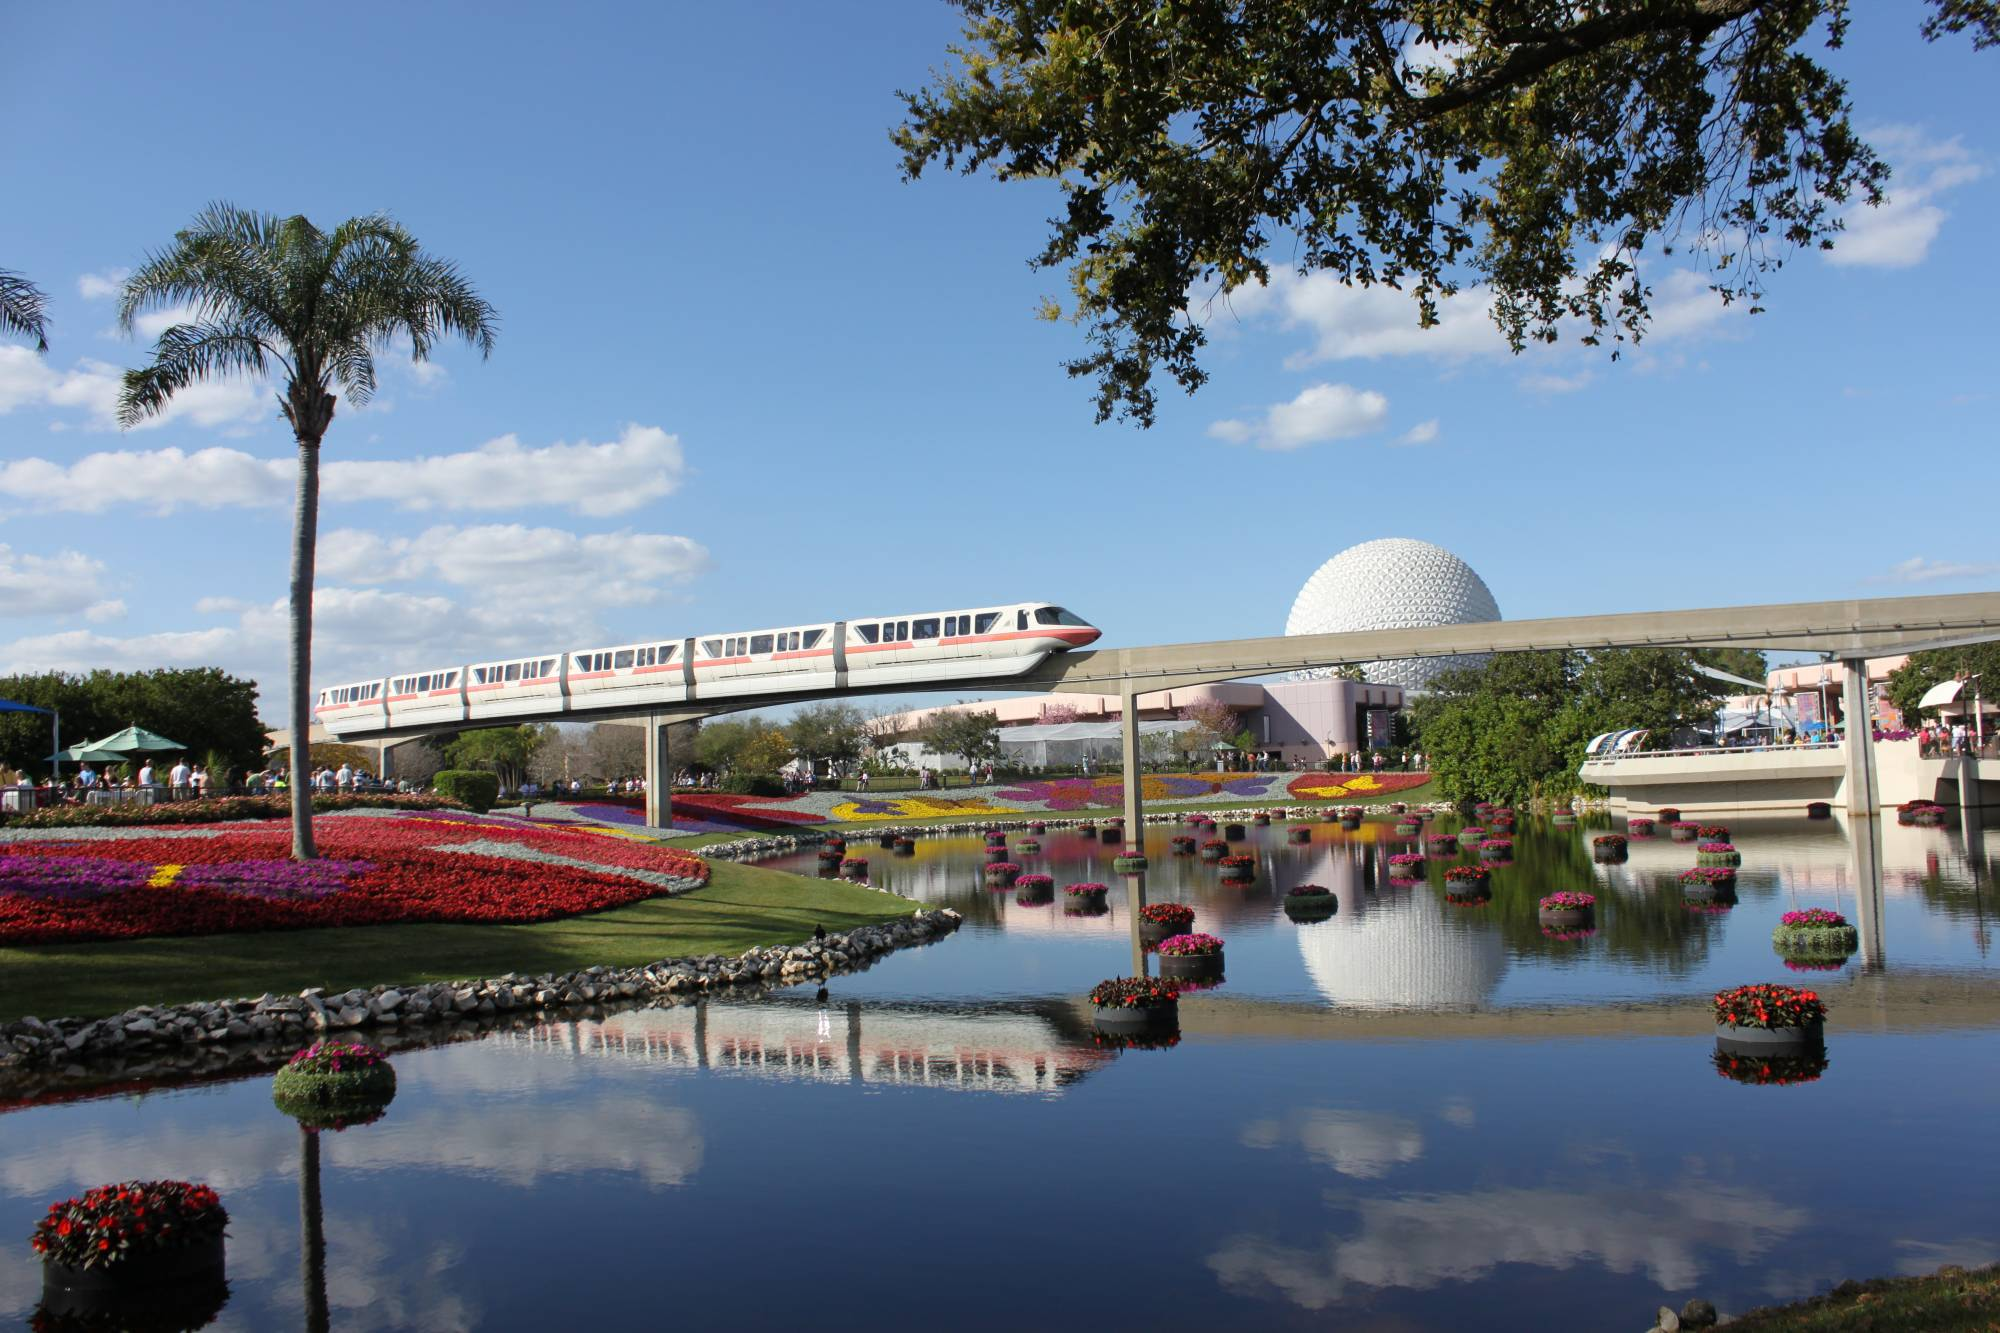 Learn what goes on at Walt Disney World throughout the year |PassPorter.com